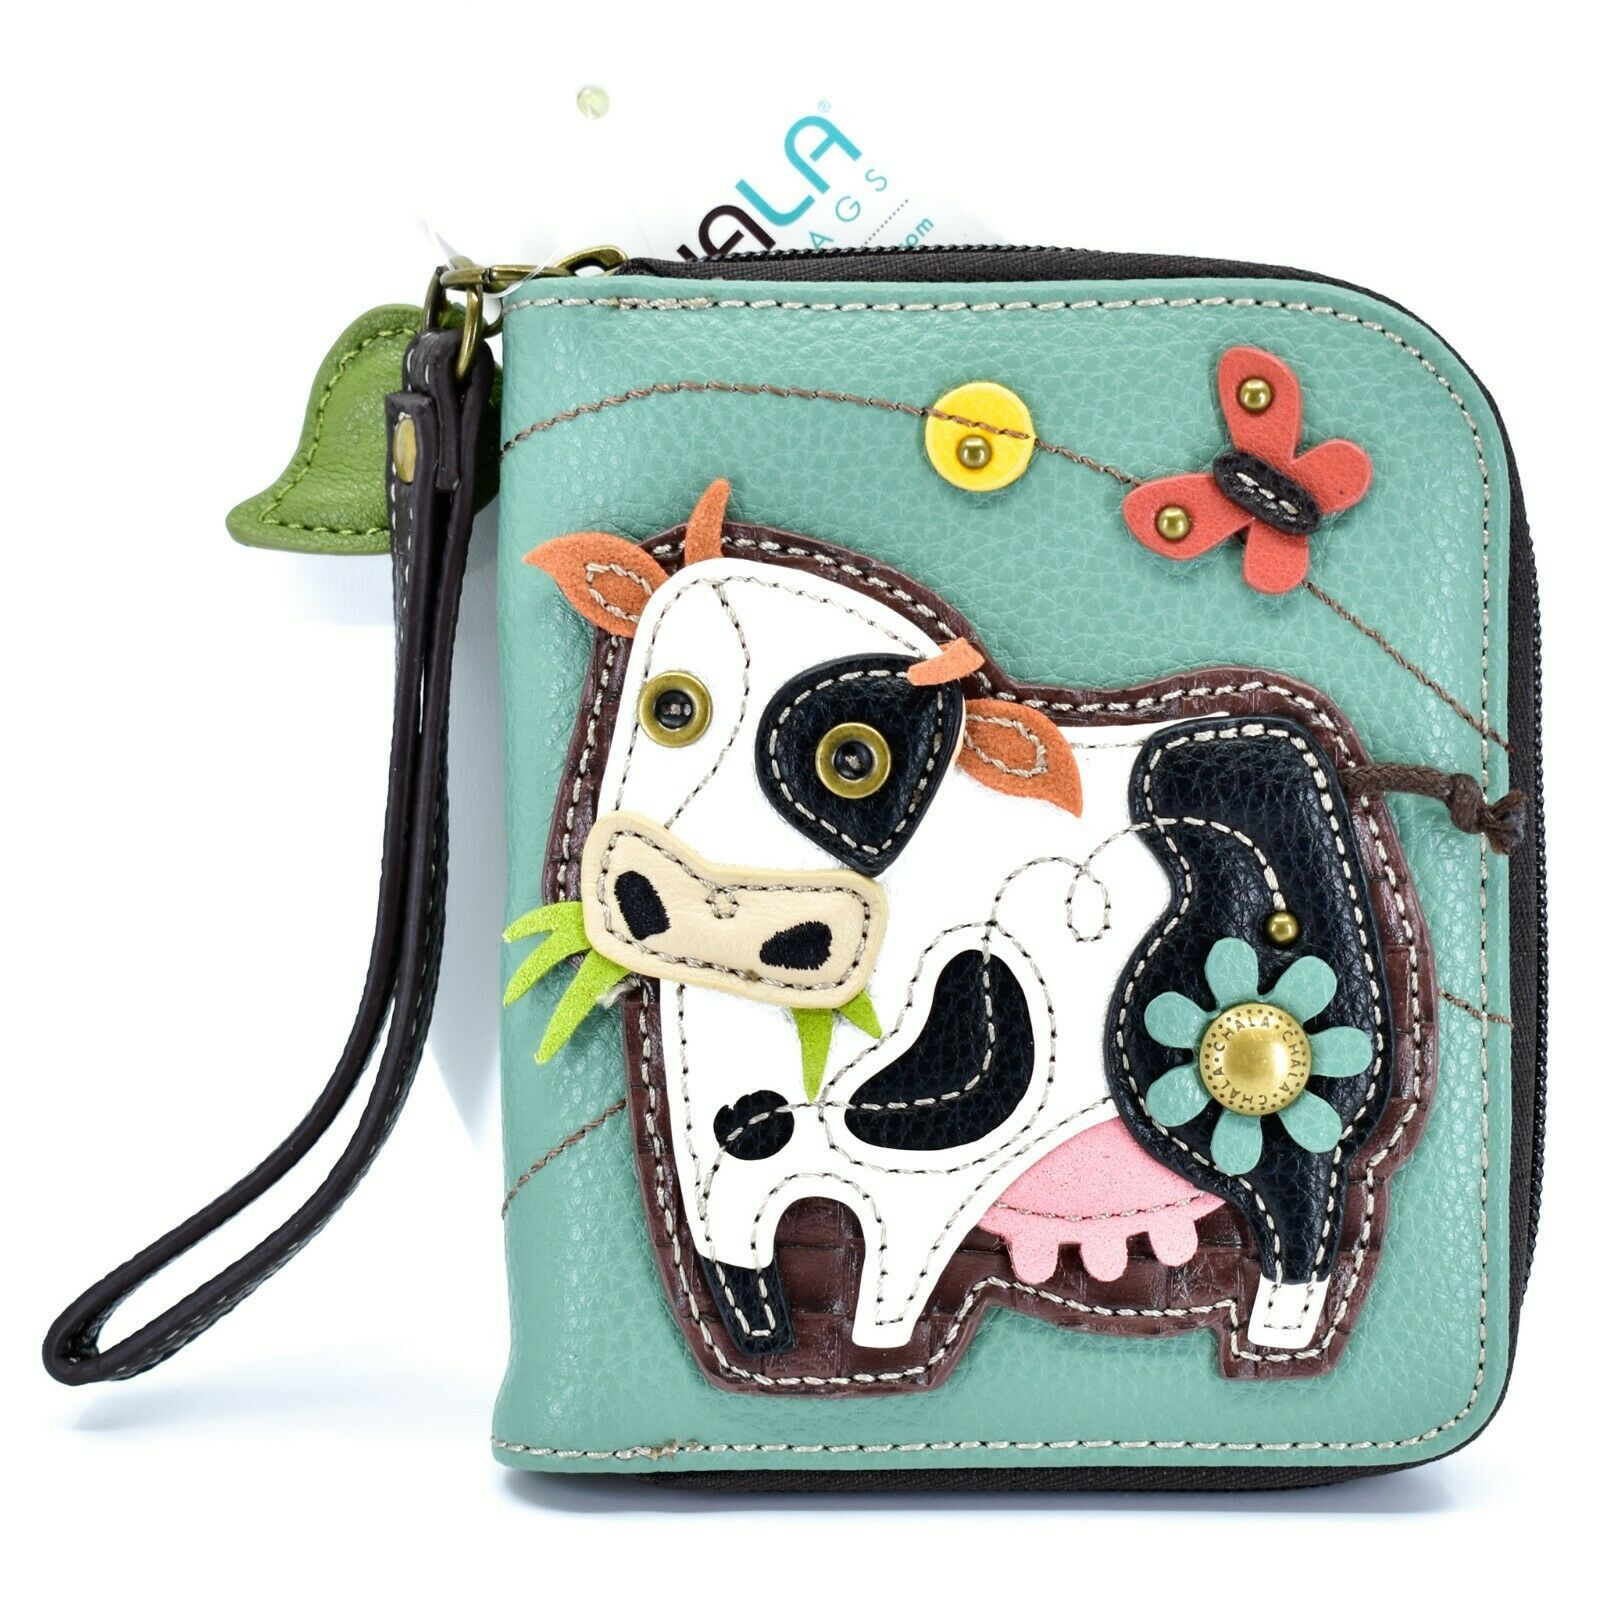 Chala Handbags Faux Leather Whimsical Cow & Butterfly Zip Around Wristlet Wallet